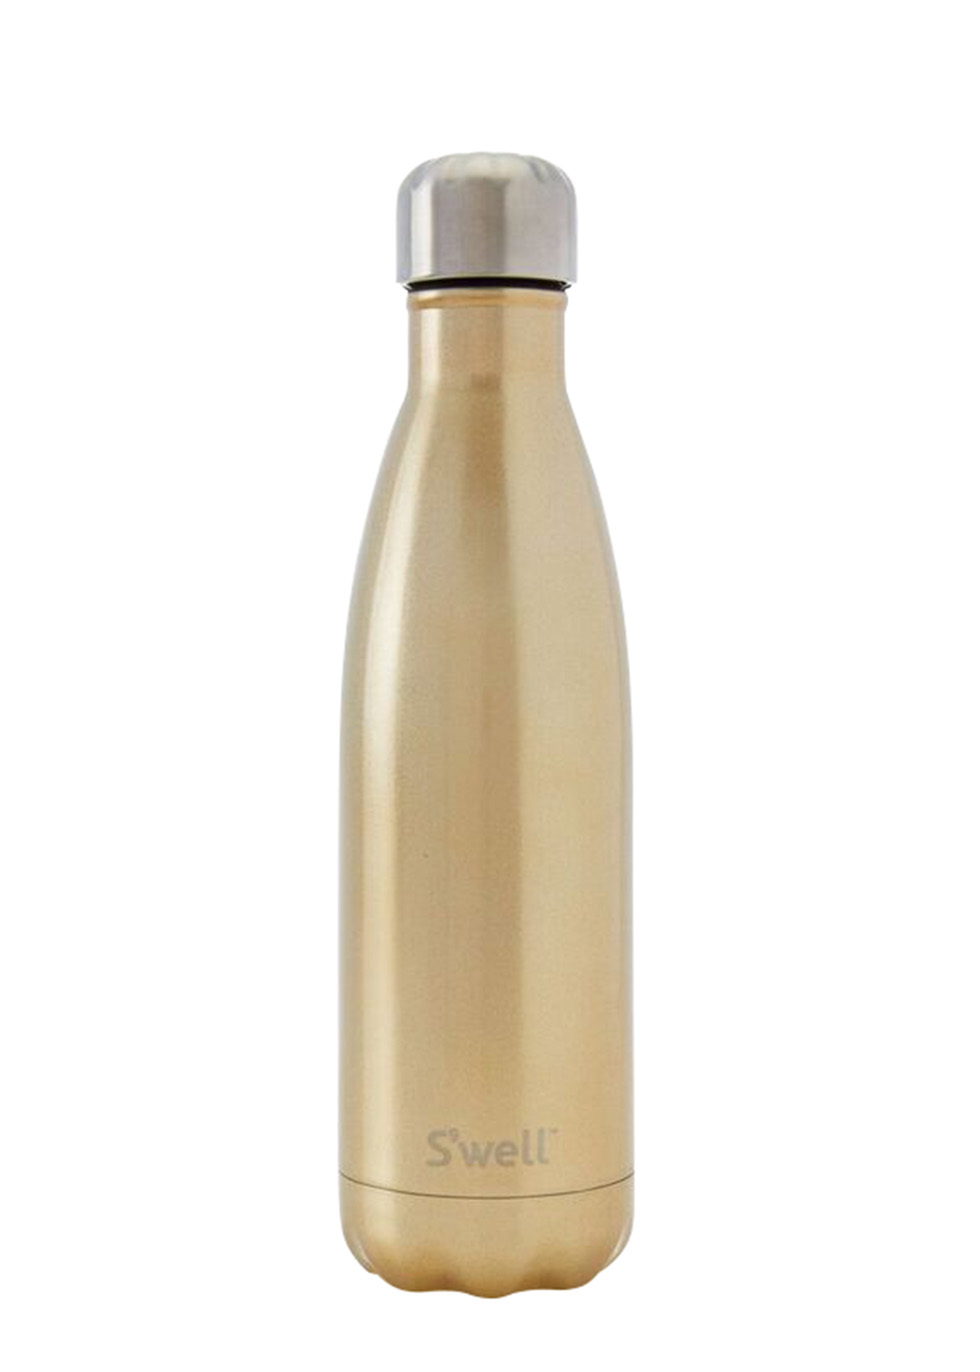 Sparkling Champagne stainless steel bottle 500ml - S'well